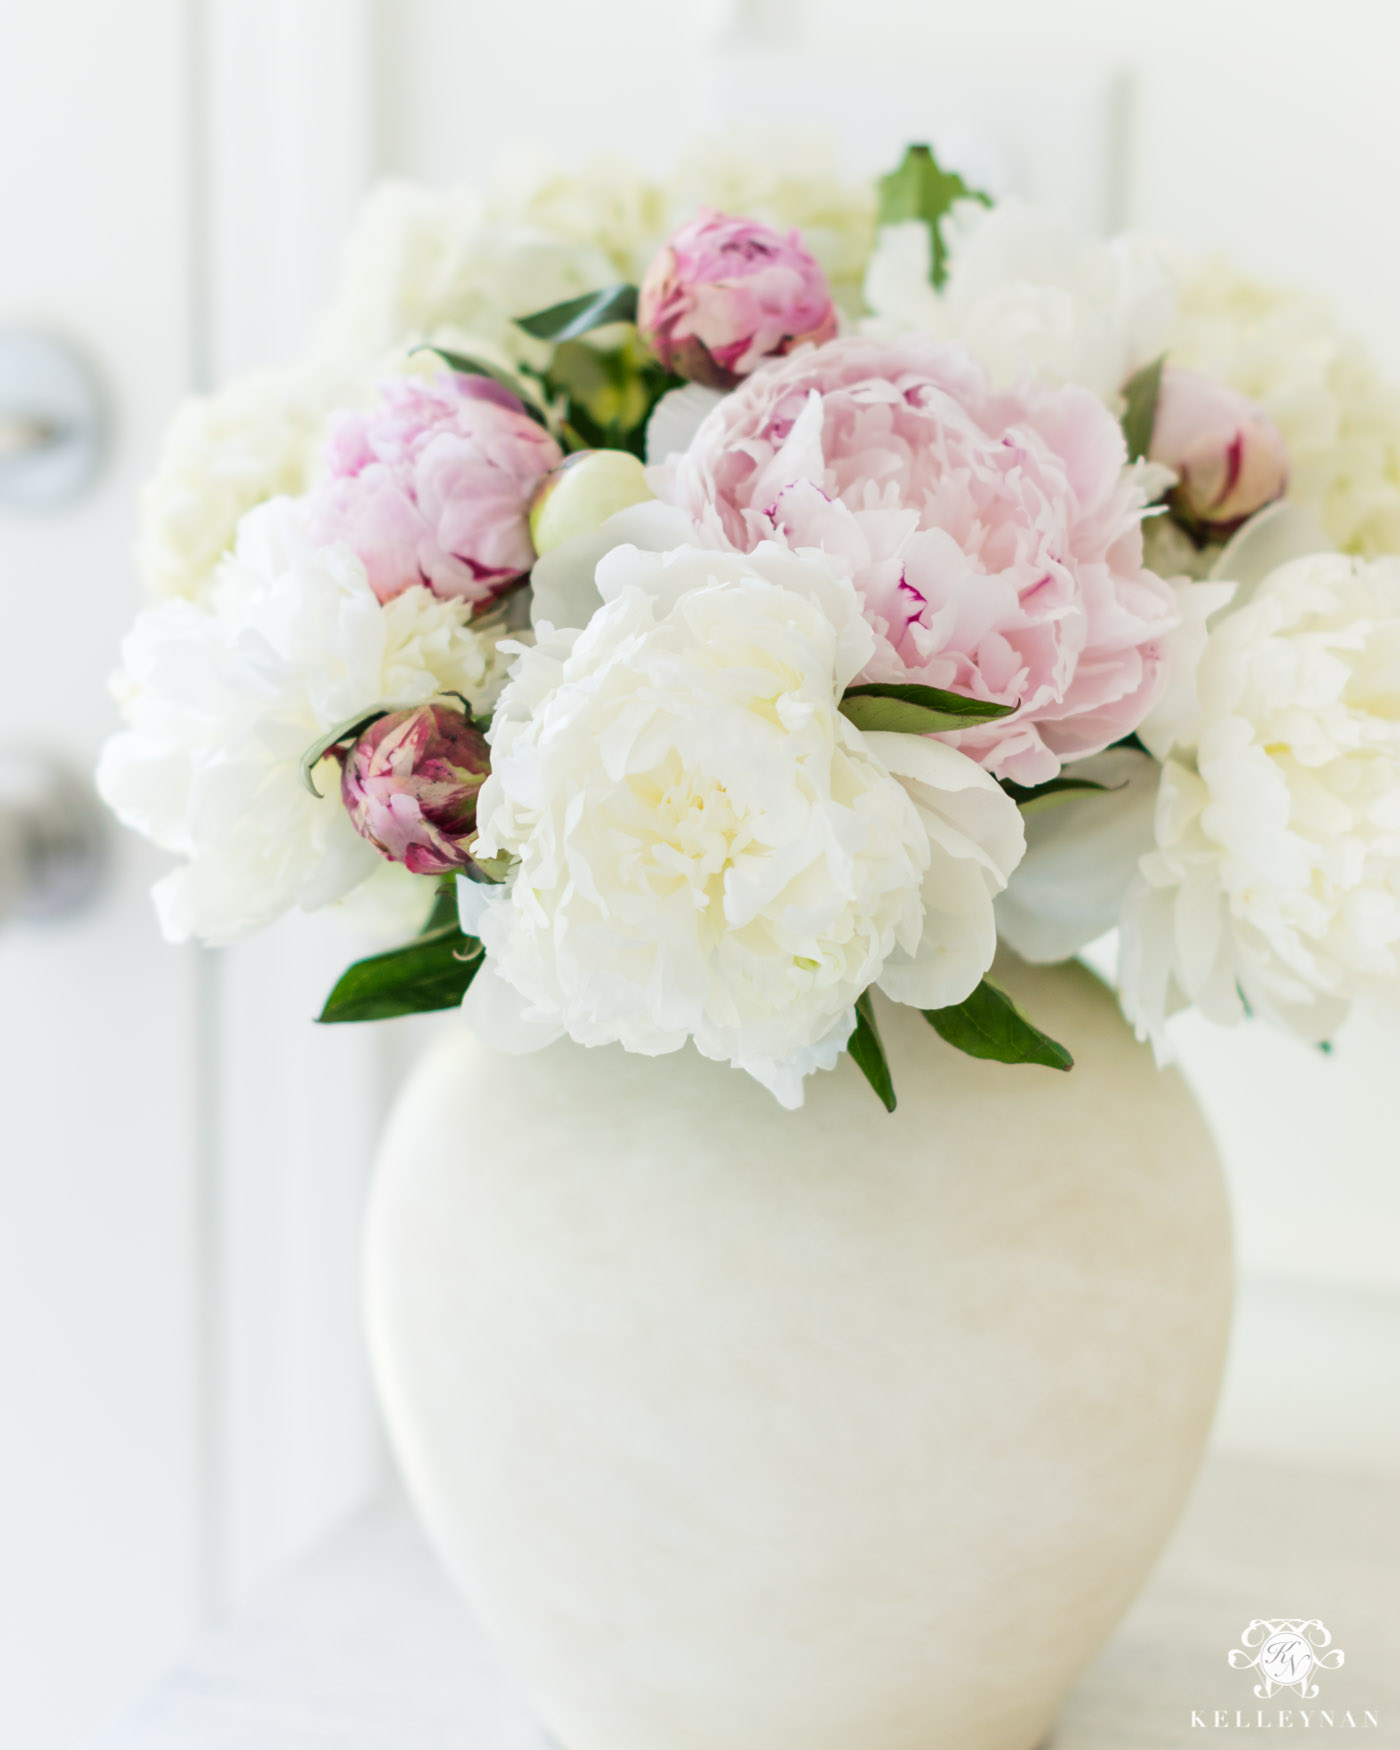 Pink and white peonies floral arrangement